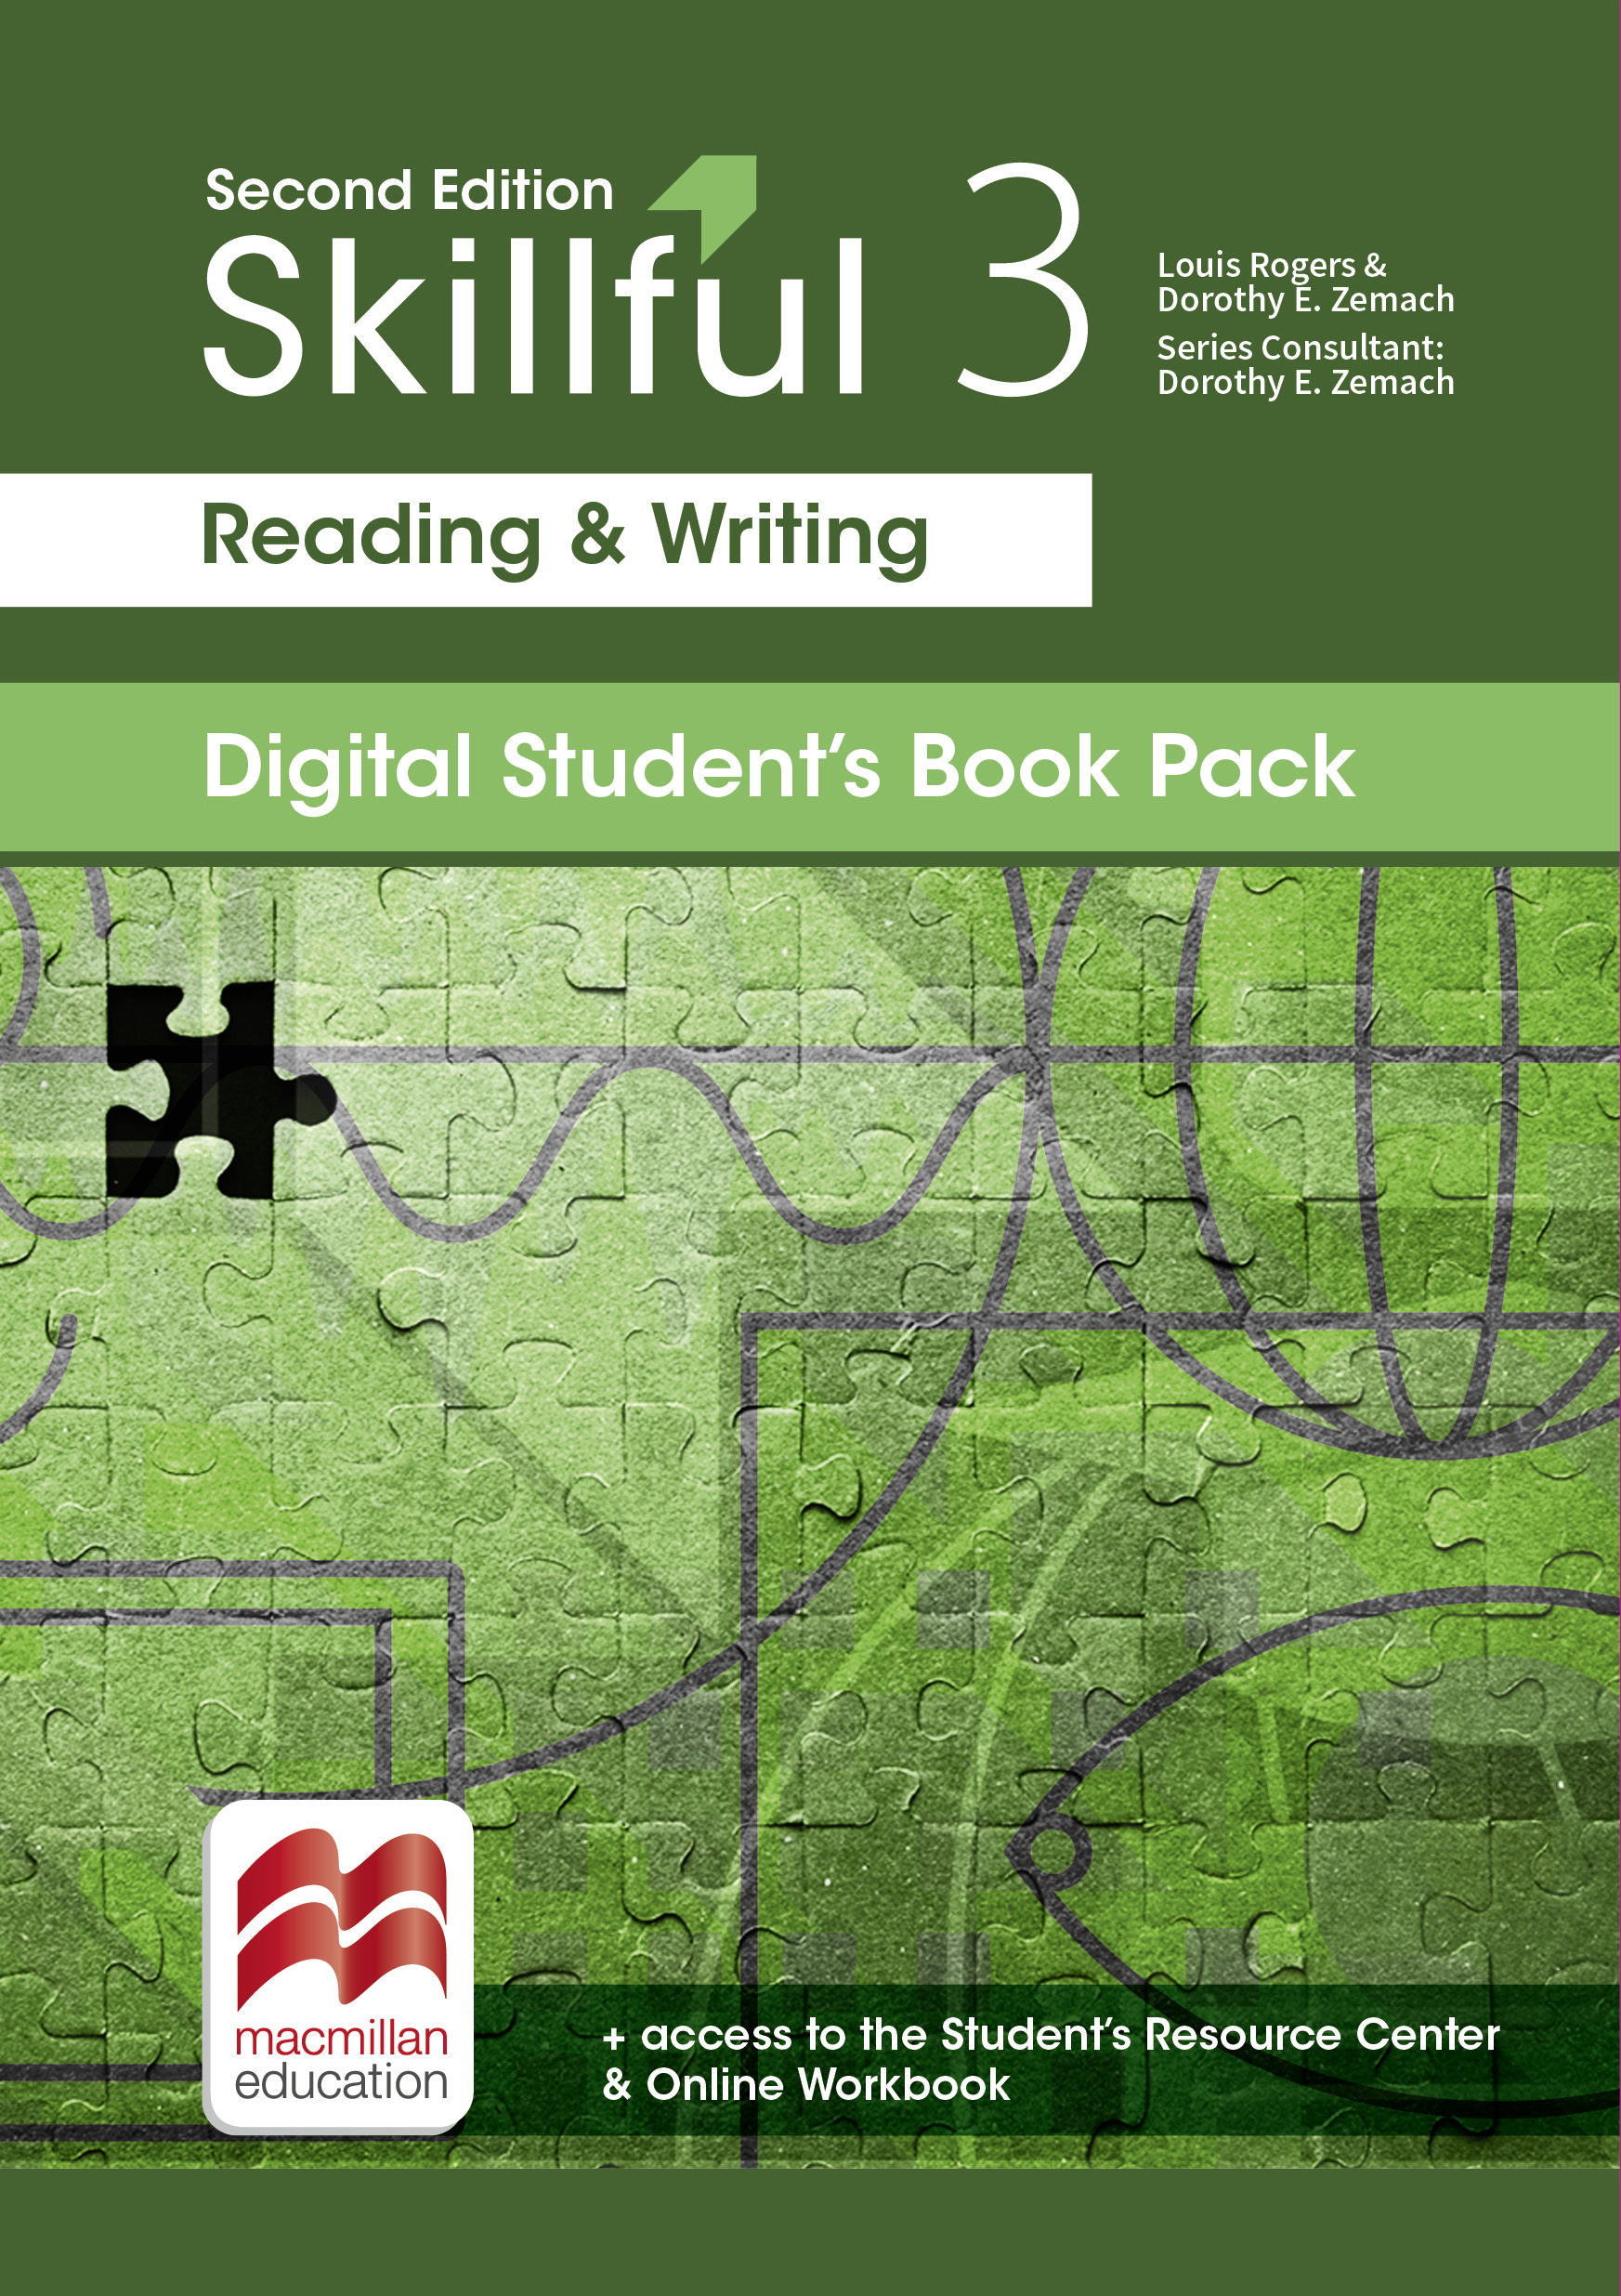 Skillful Second Edition Level 3 Reading and Writing Premium Digital Student's Book Pack